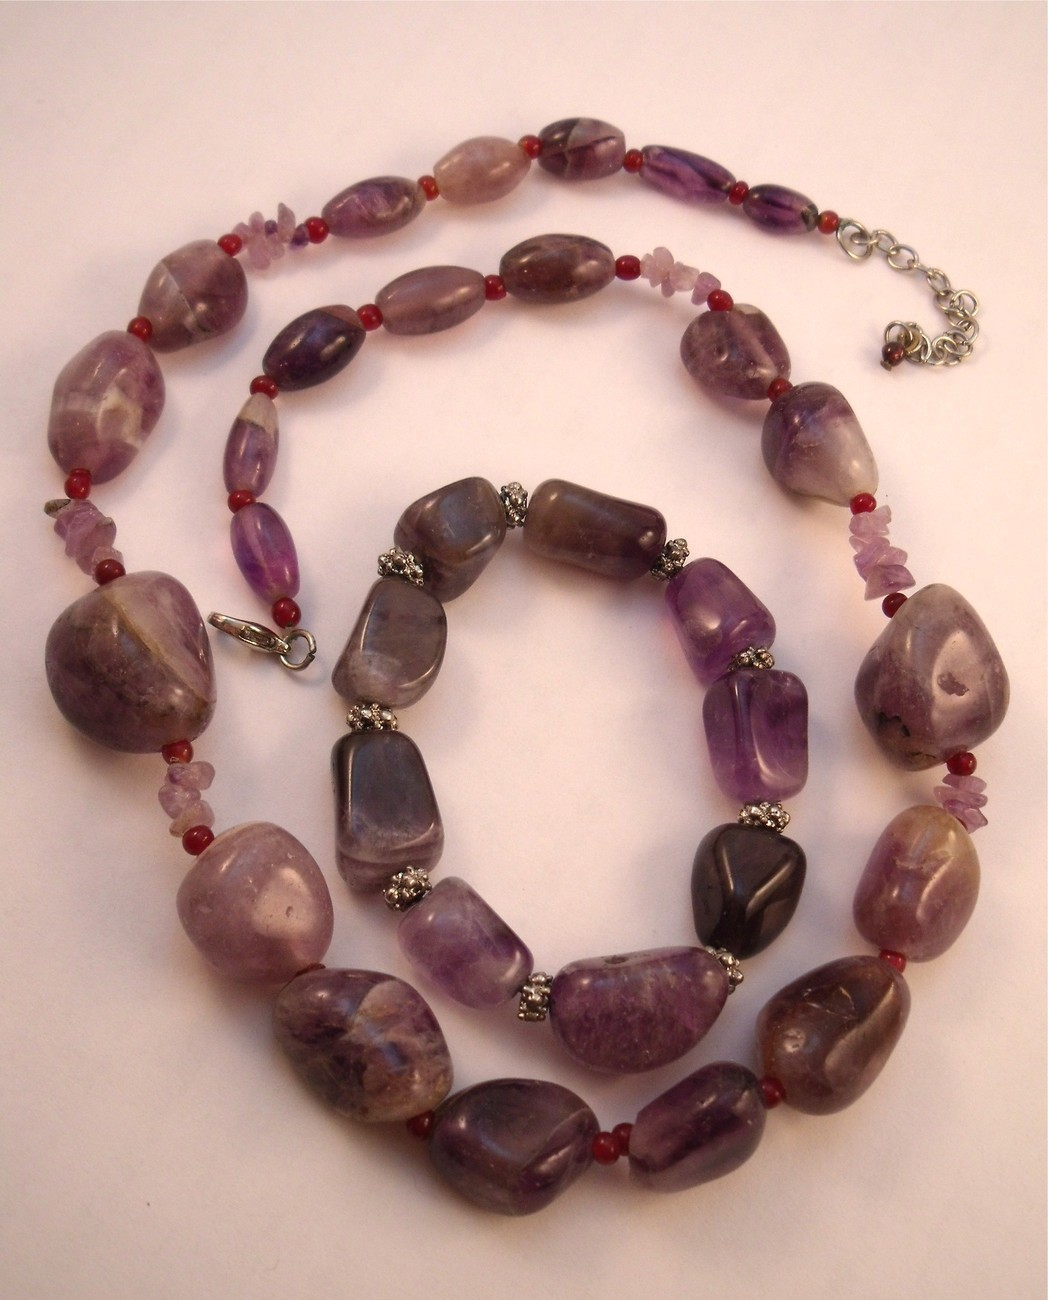 Primary image for Amethyst pebble necklace and bracelet